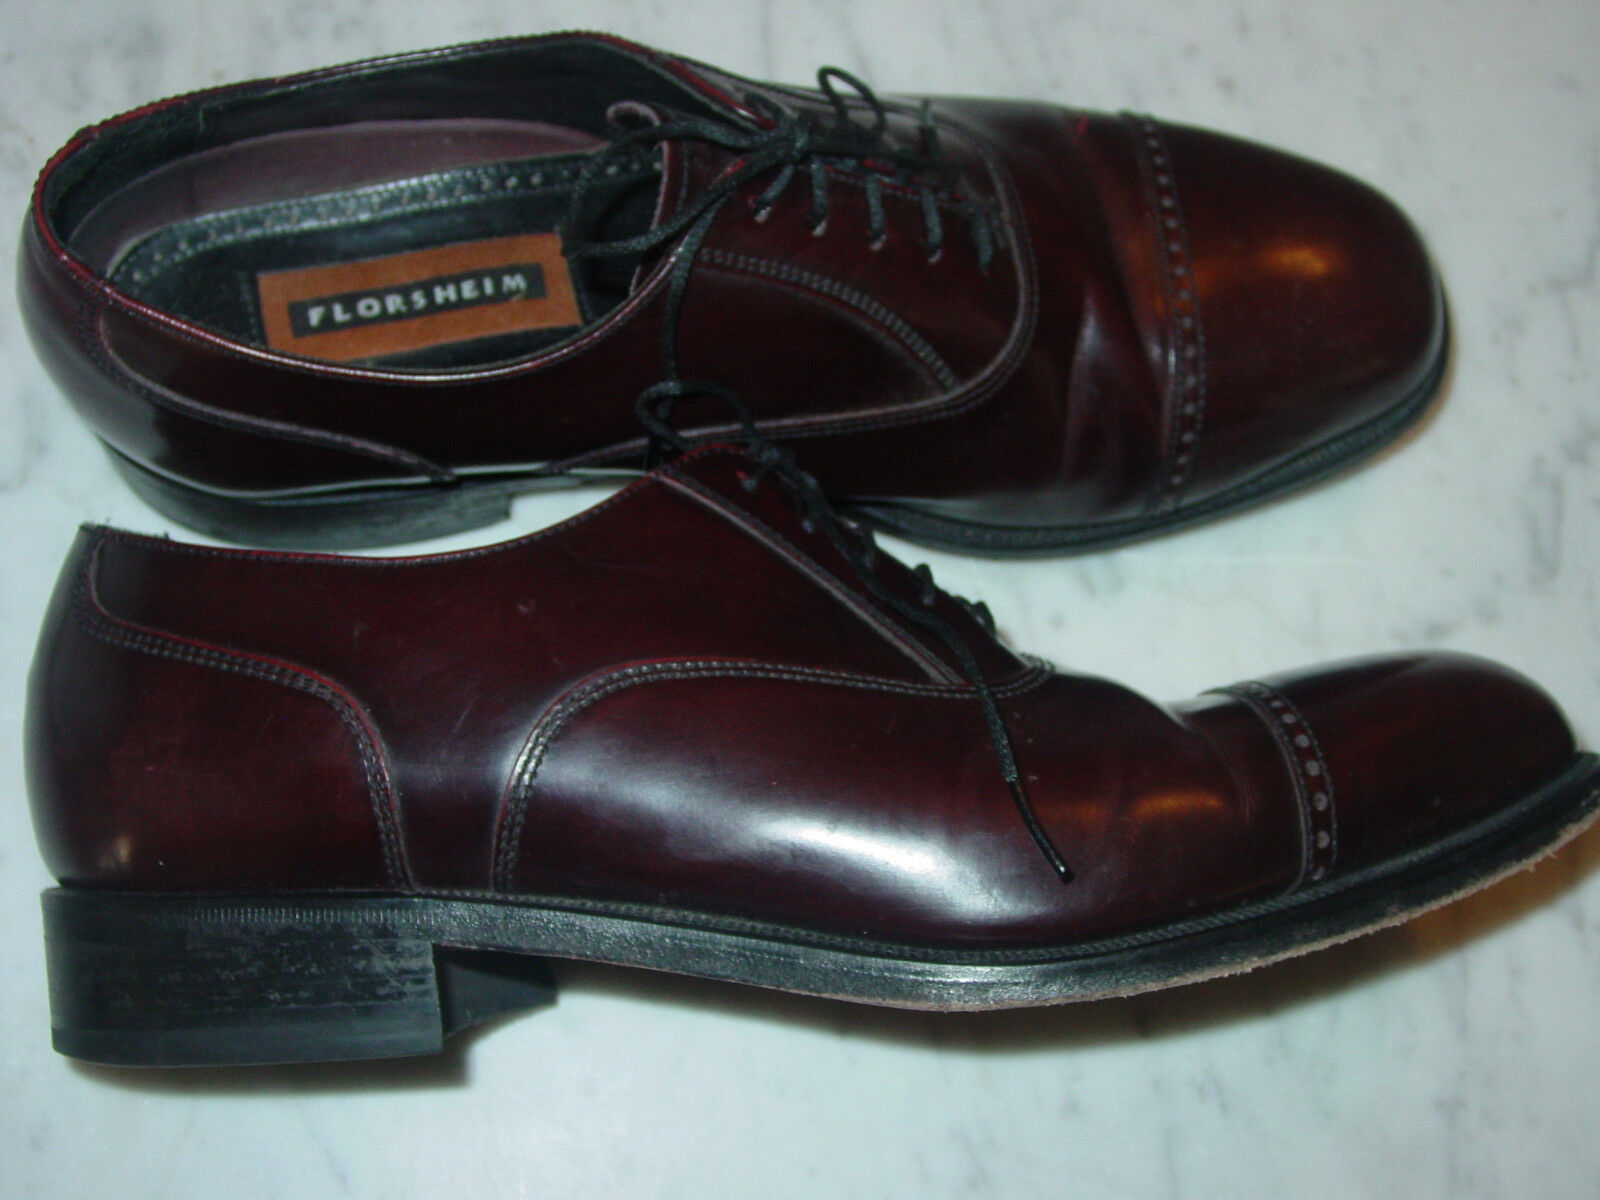 Florsheim LEXINGTON Uomo Burgundy Size Pelle 17067-05 Cap Toe Oxford Shoes! Size Burgundy 9D 656a62